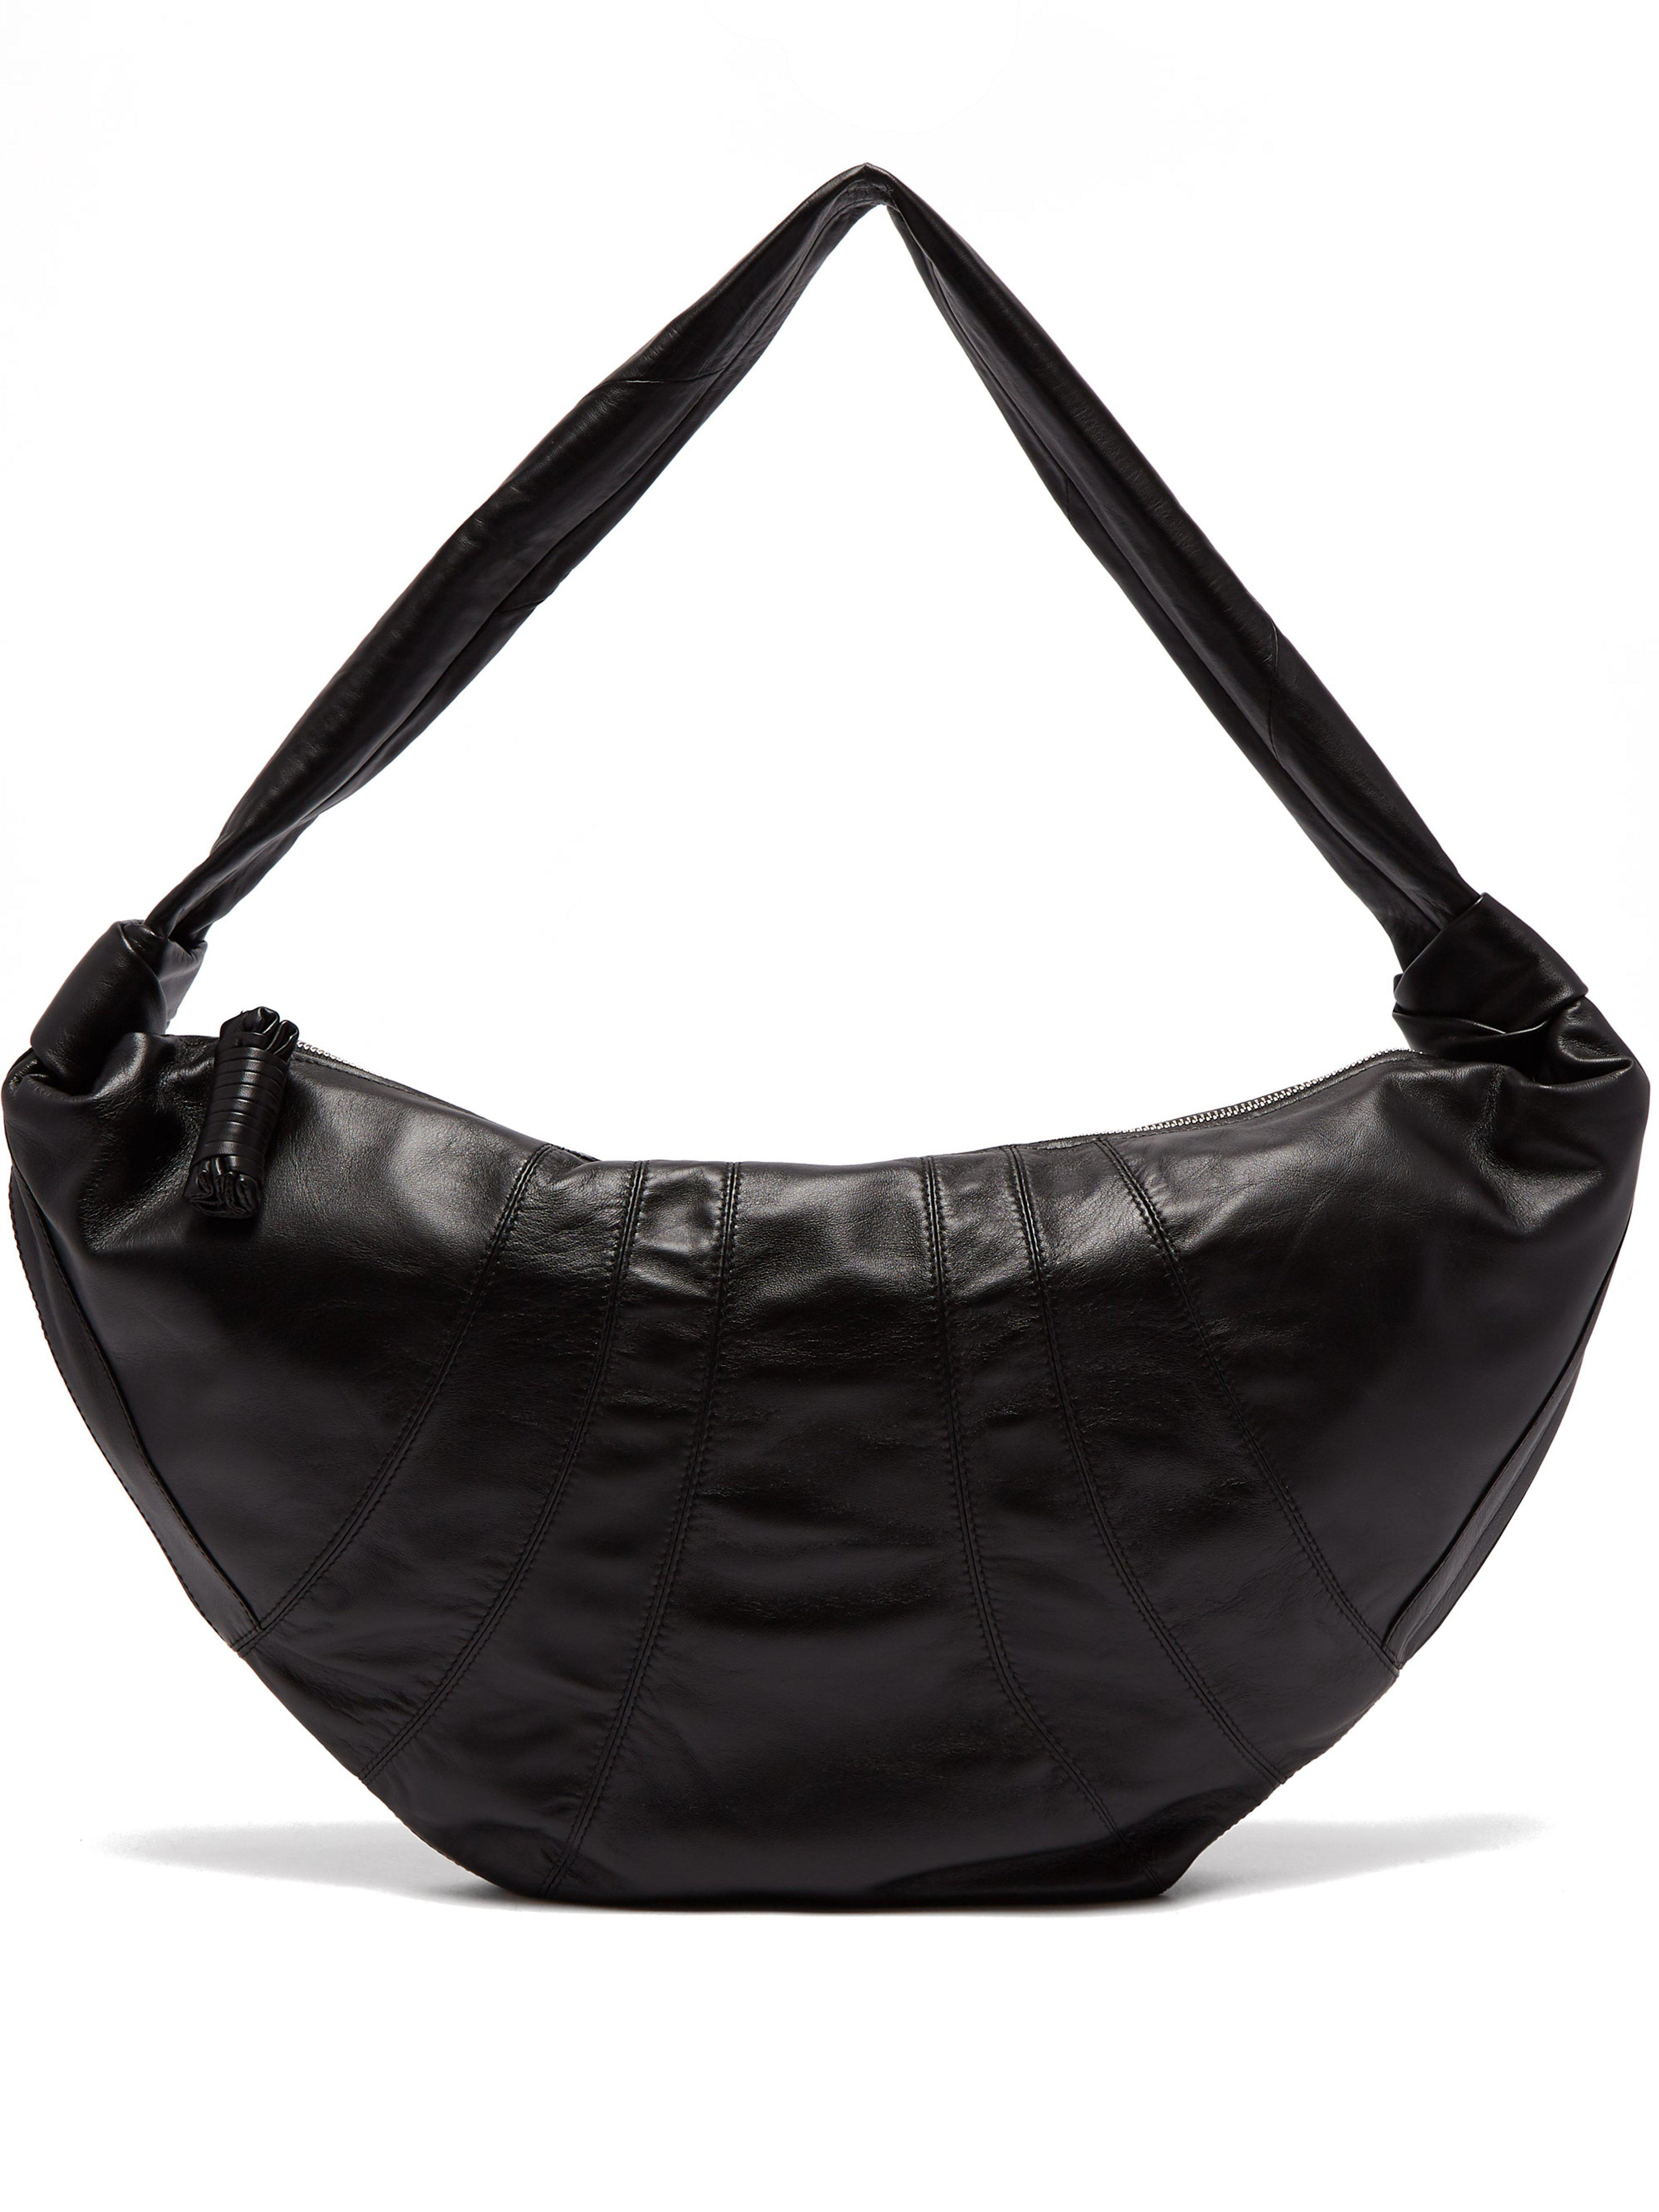 5fa05386f5 Gallery. Previously sold at  MATCHESFASHION.COM · Women s Triple Zip Cross  Body Bags ...